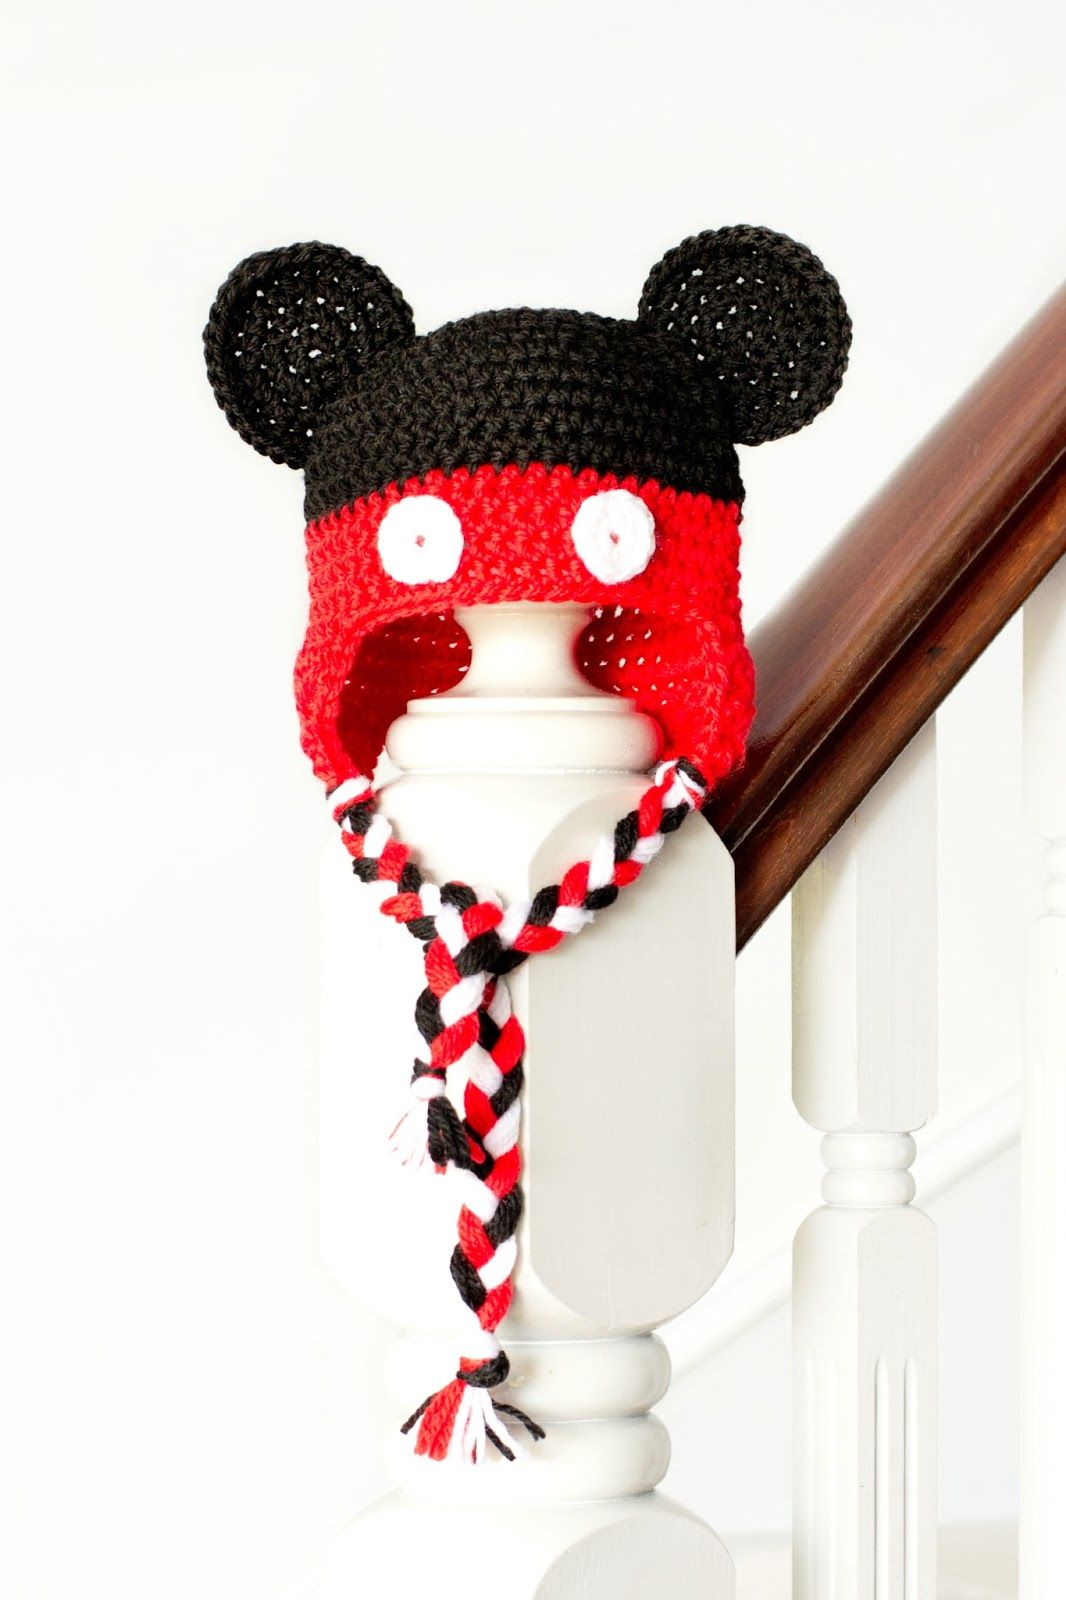 Mickey Mouse Inspired Baby Hat Crochet Pattern | Gorros, Ganchillo y ...